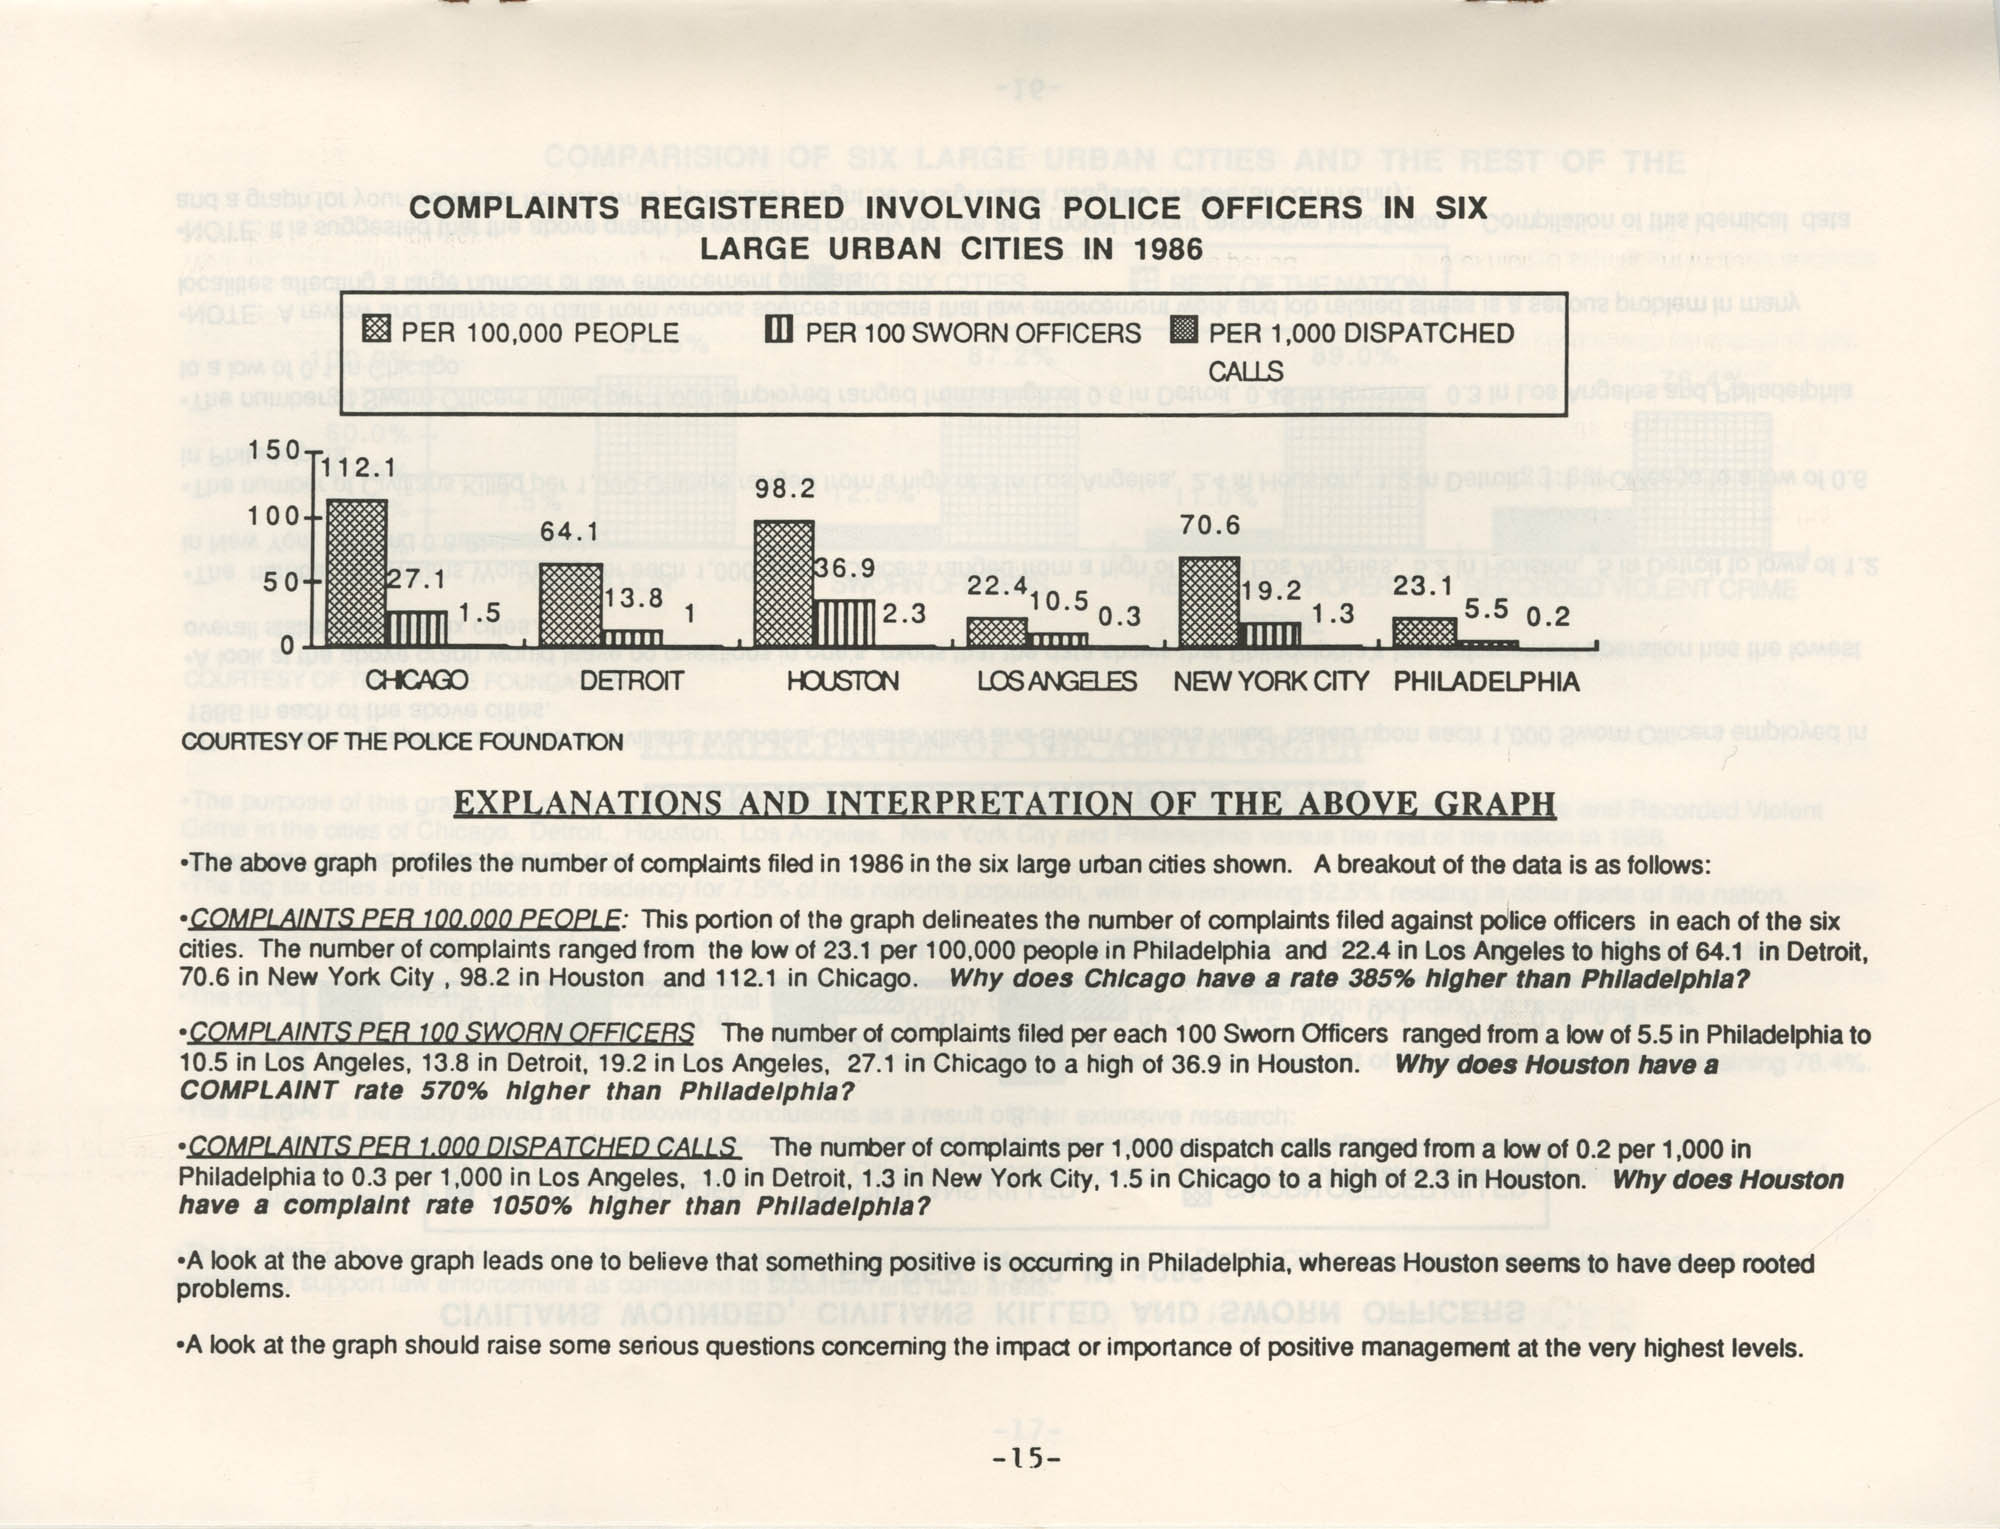 Crime and Criminal Activities in the U.S.A., NAACP National Board of Directors, Page 15